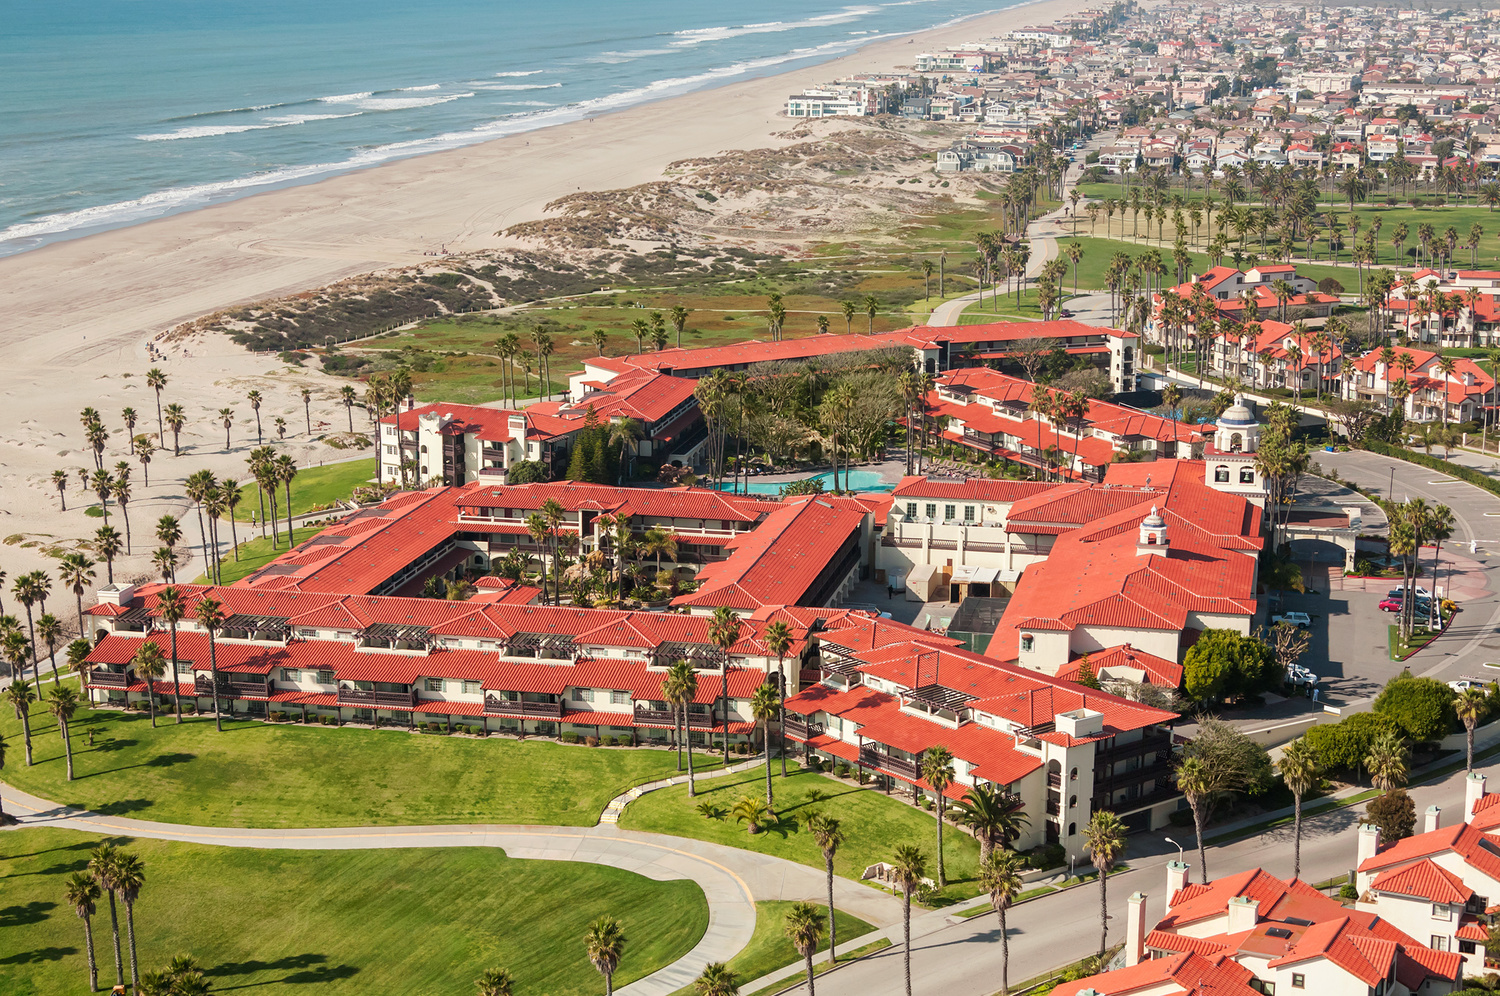 Jobs At Embassy Suites By Hilton Mandalay Beach Resort Oxnard Ca Hospitality Online